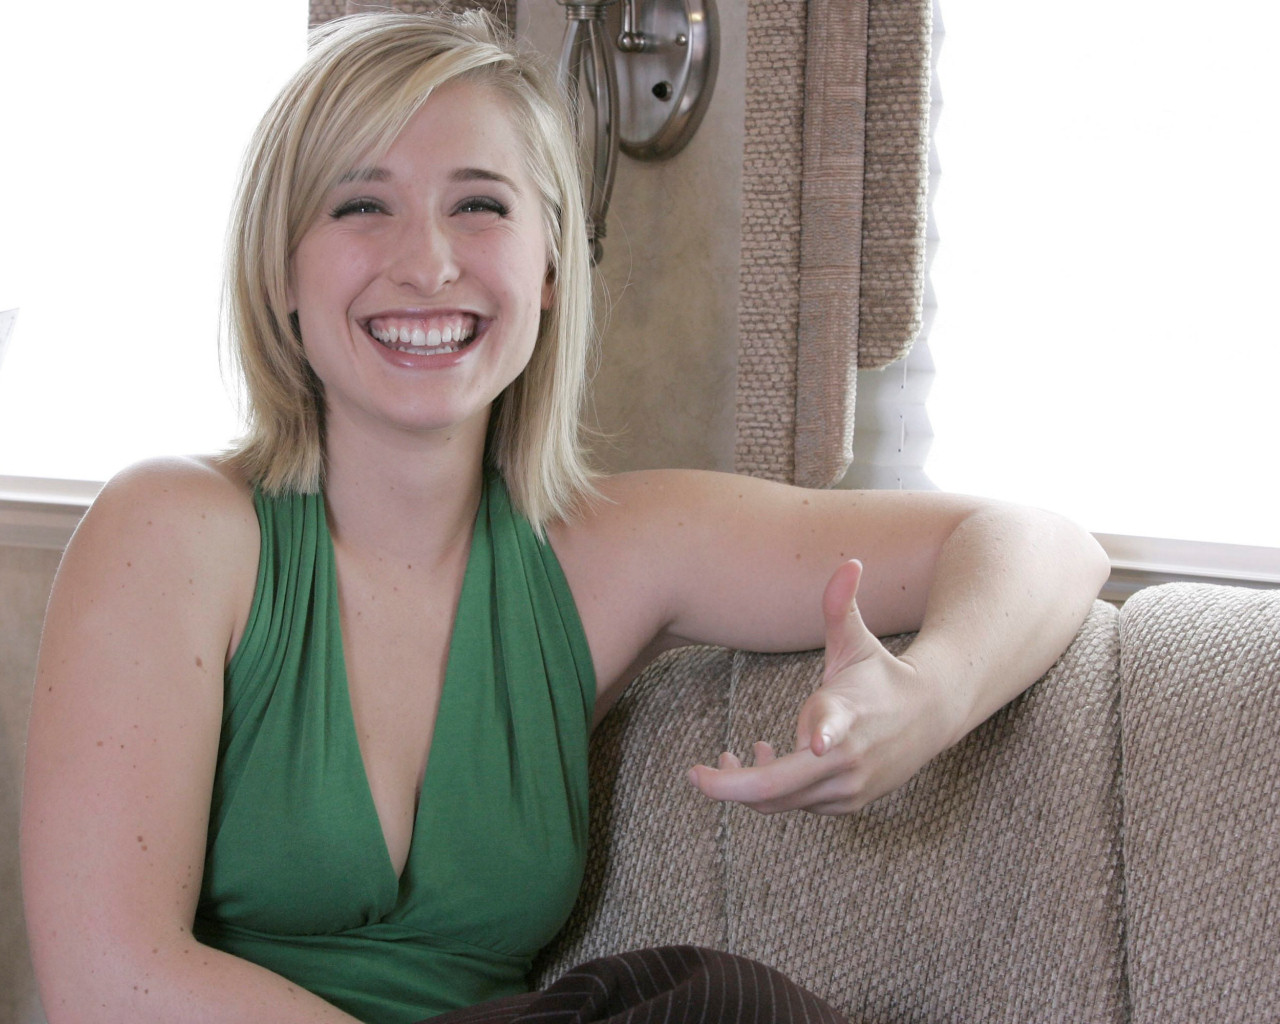 Allison Mack   Allison Mack Wallpaper 178727 1280x1024